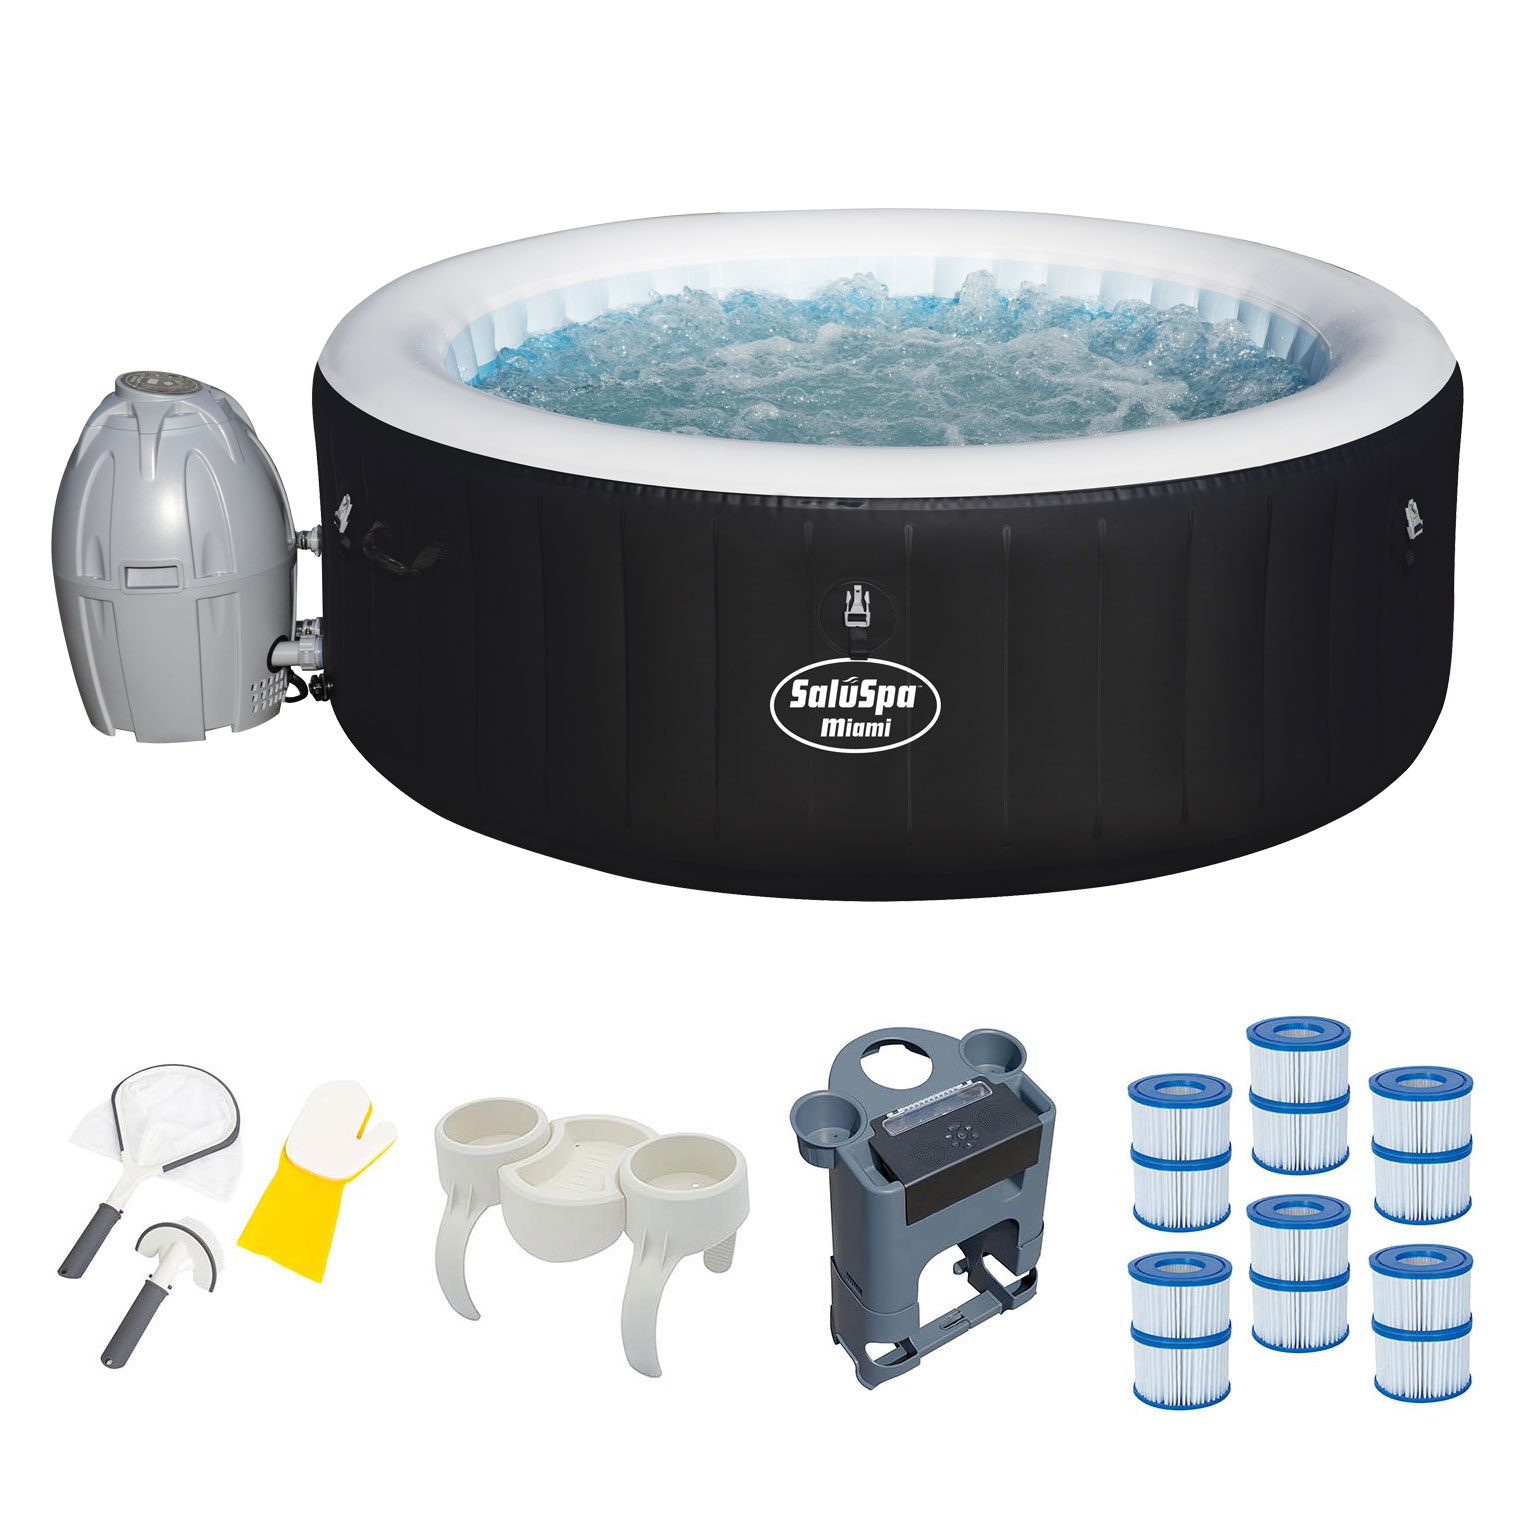 Bestway Inflatable Hot Tub + Entertainment Center + 6 Filters + Cleaning Set by Hot Tubs